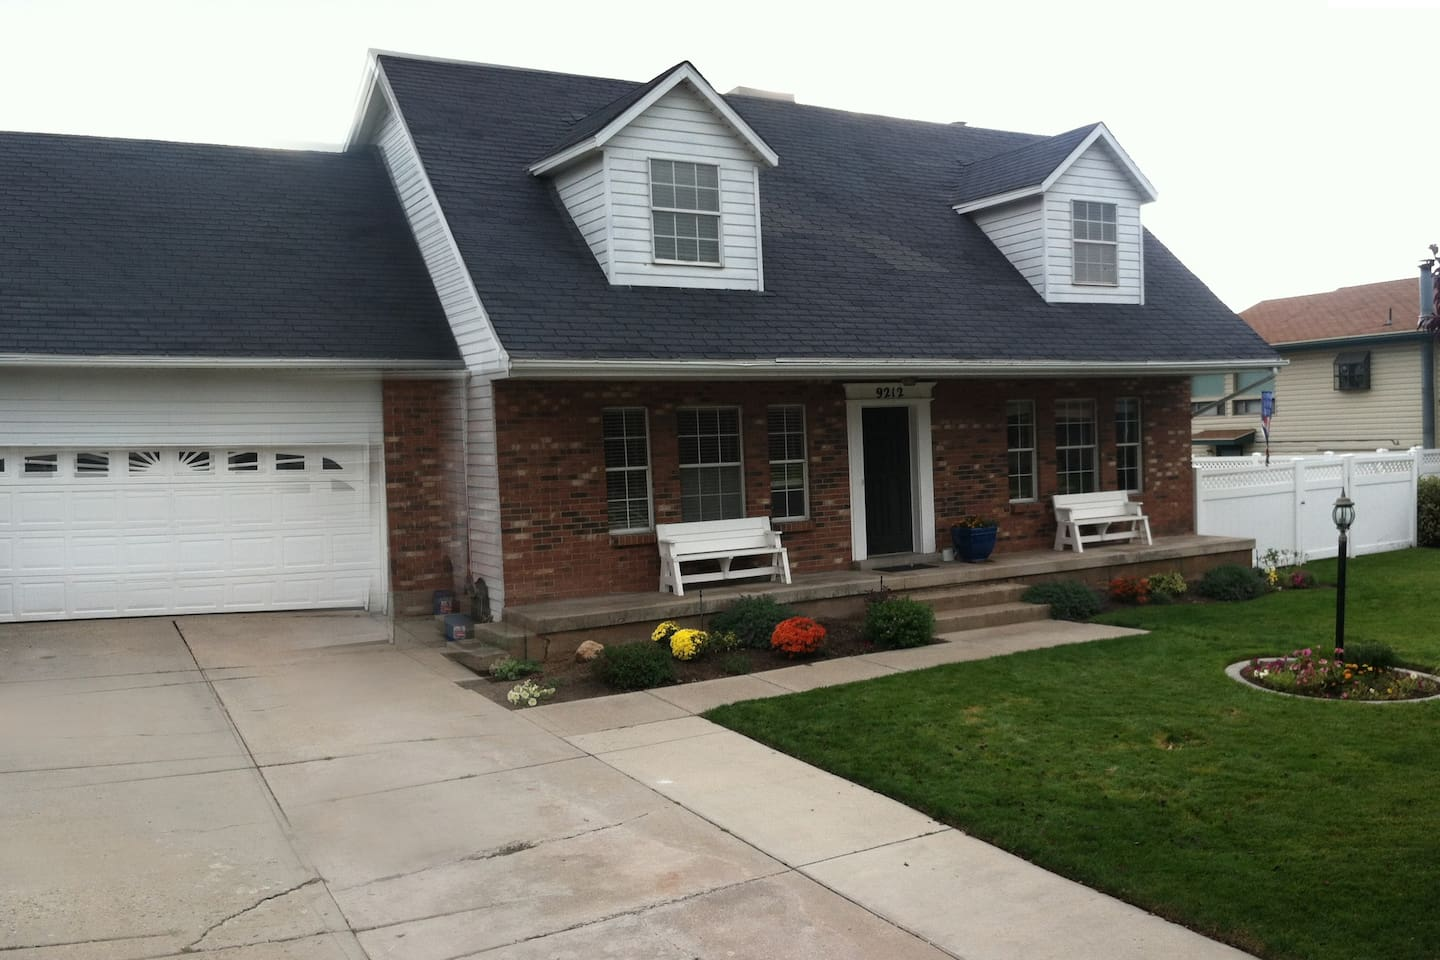 4 Bedroom Home - Great location